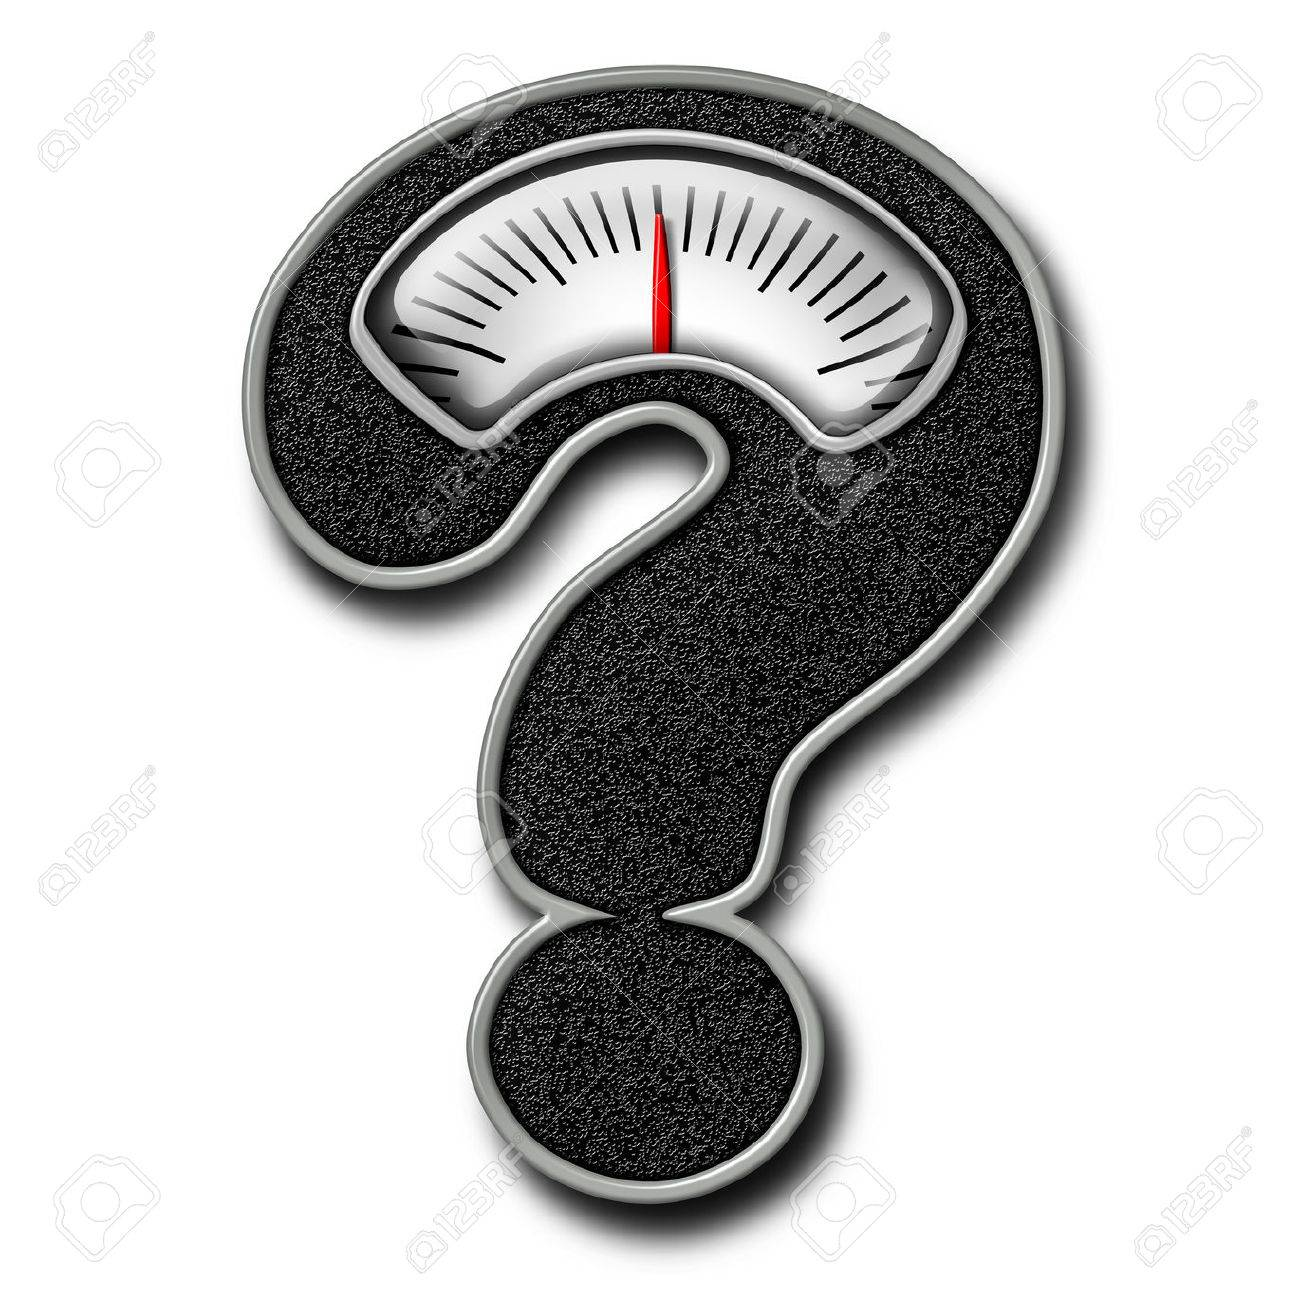 Dieting Advice Symbol As A Bathroom Weight Scale Shaped Question Mark Representing Diet Confusion